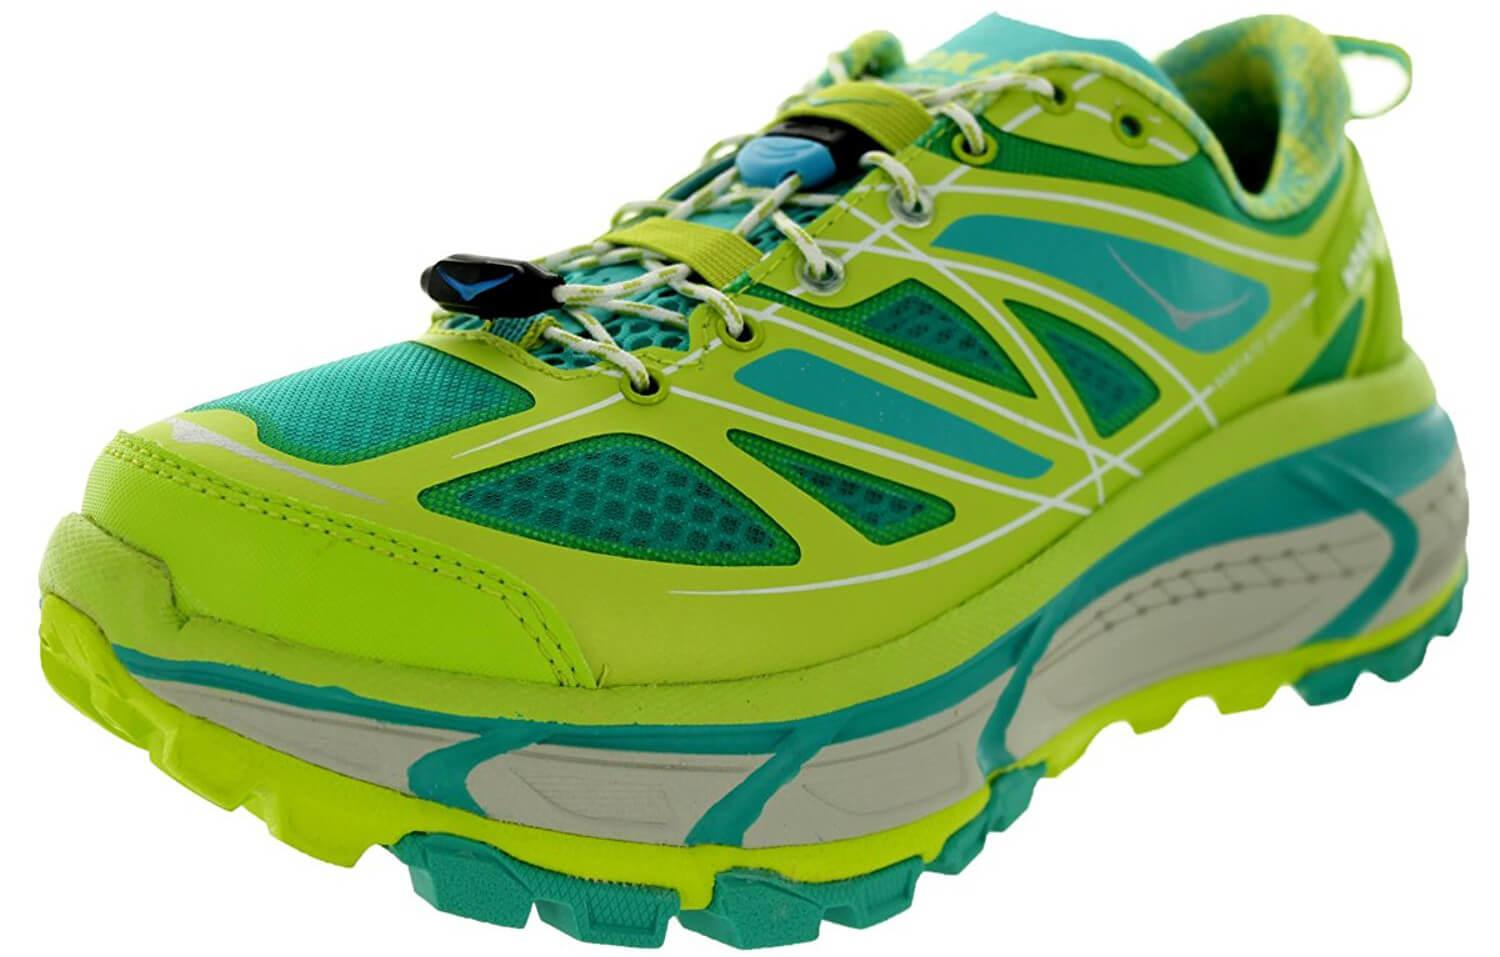 A three quarter perspective of the Hoka One One Mafate Speed Yellow